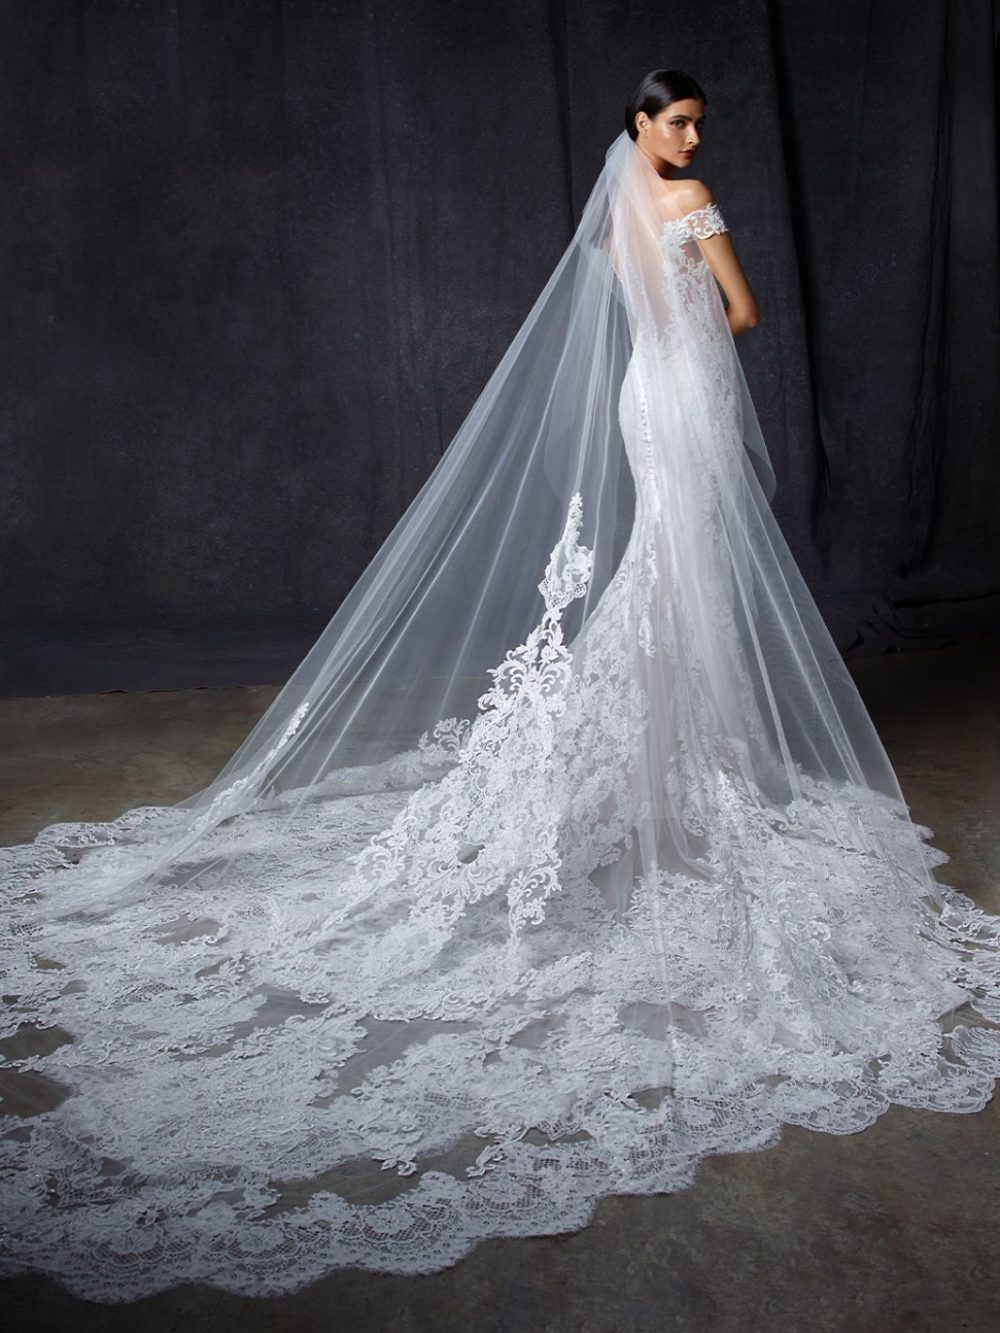 Olive by Enzoani Wedding gown dress veil